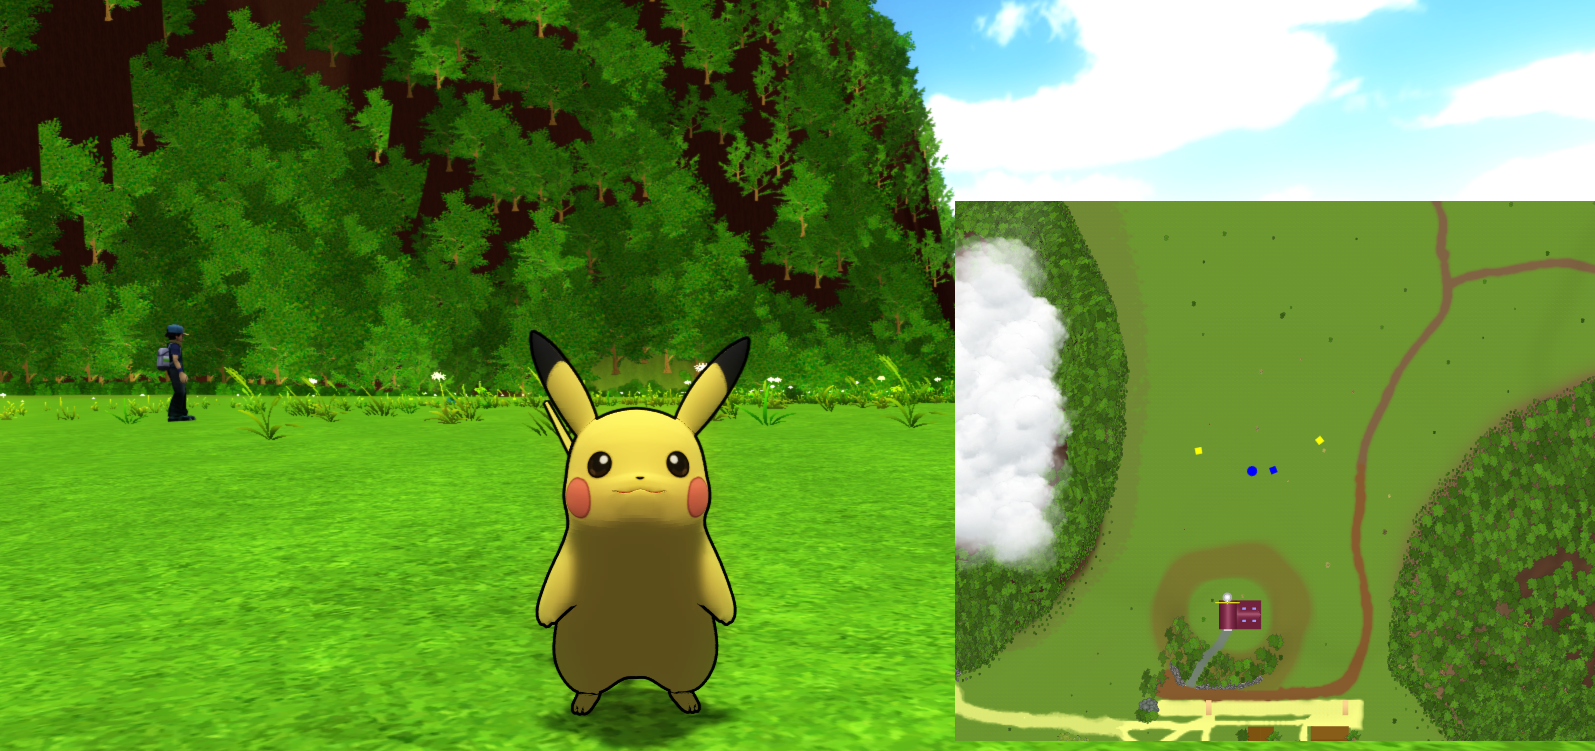 Release pokmon mmo 3d the pok community forums - Pokemon 3d download ...